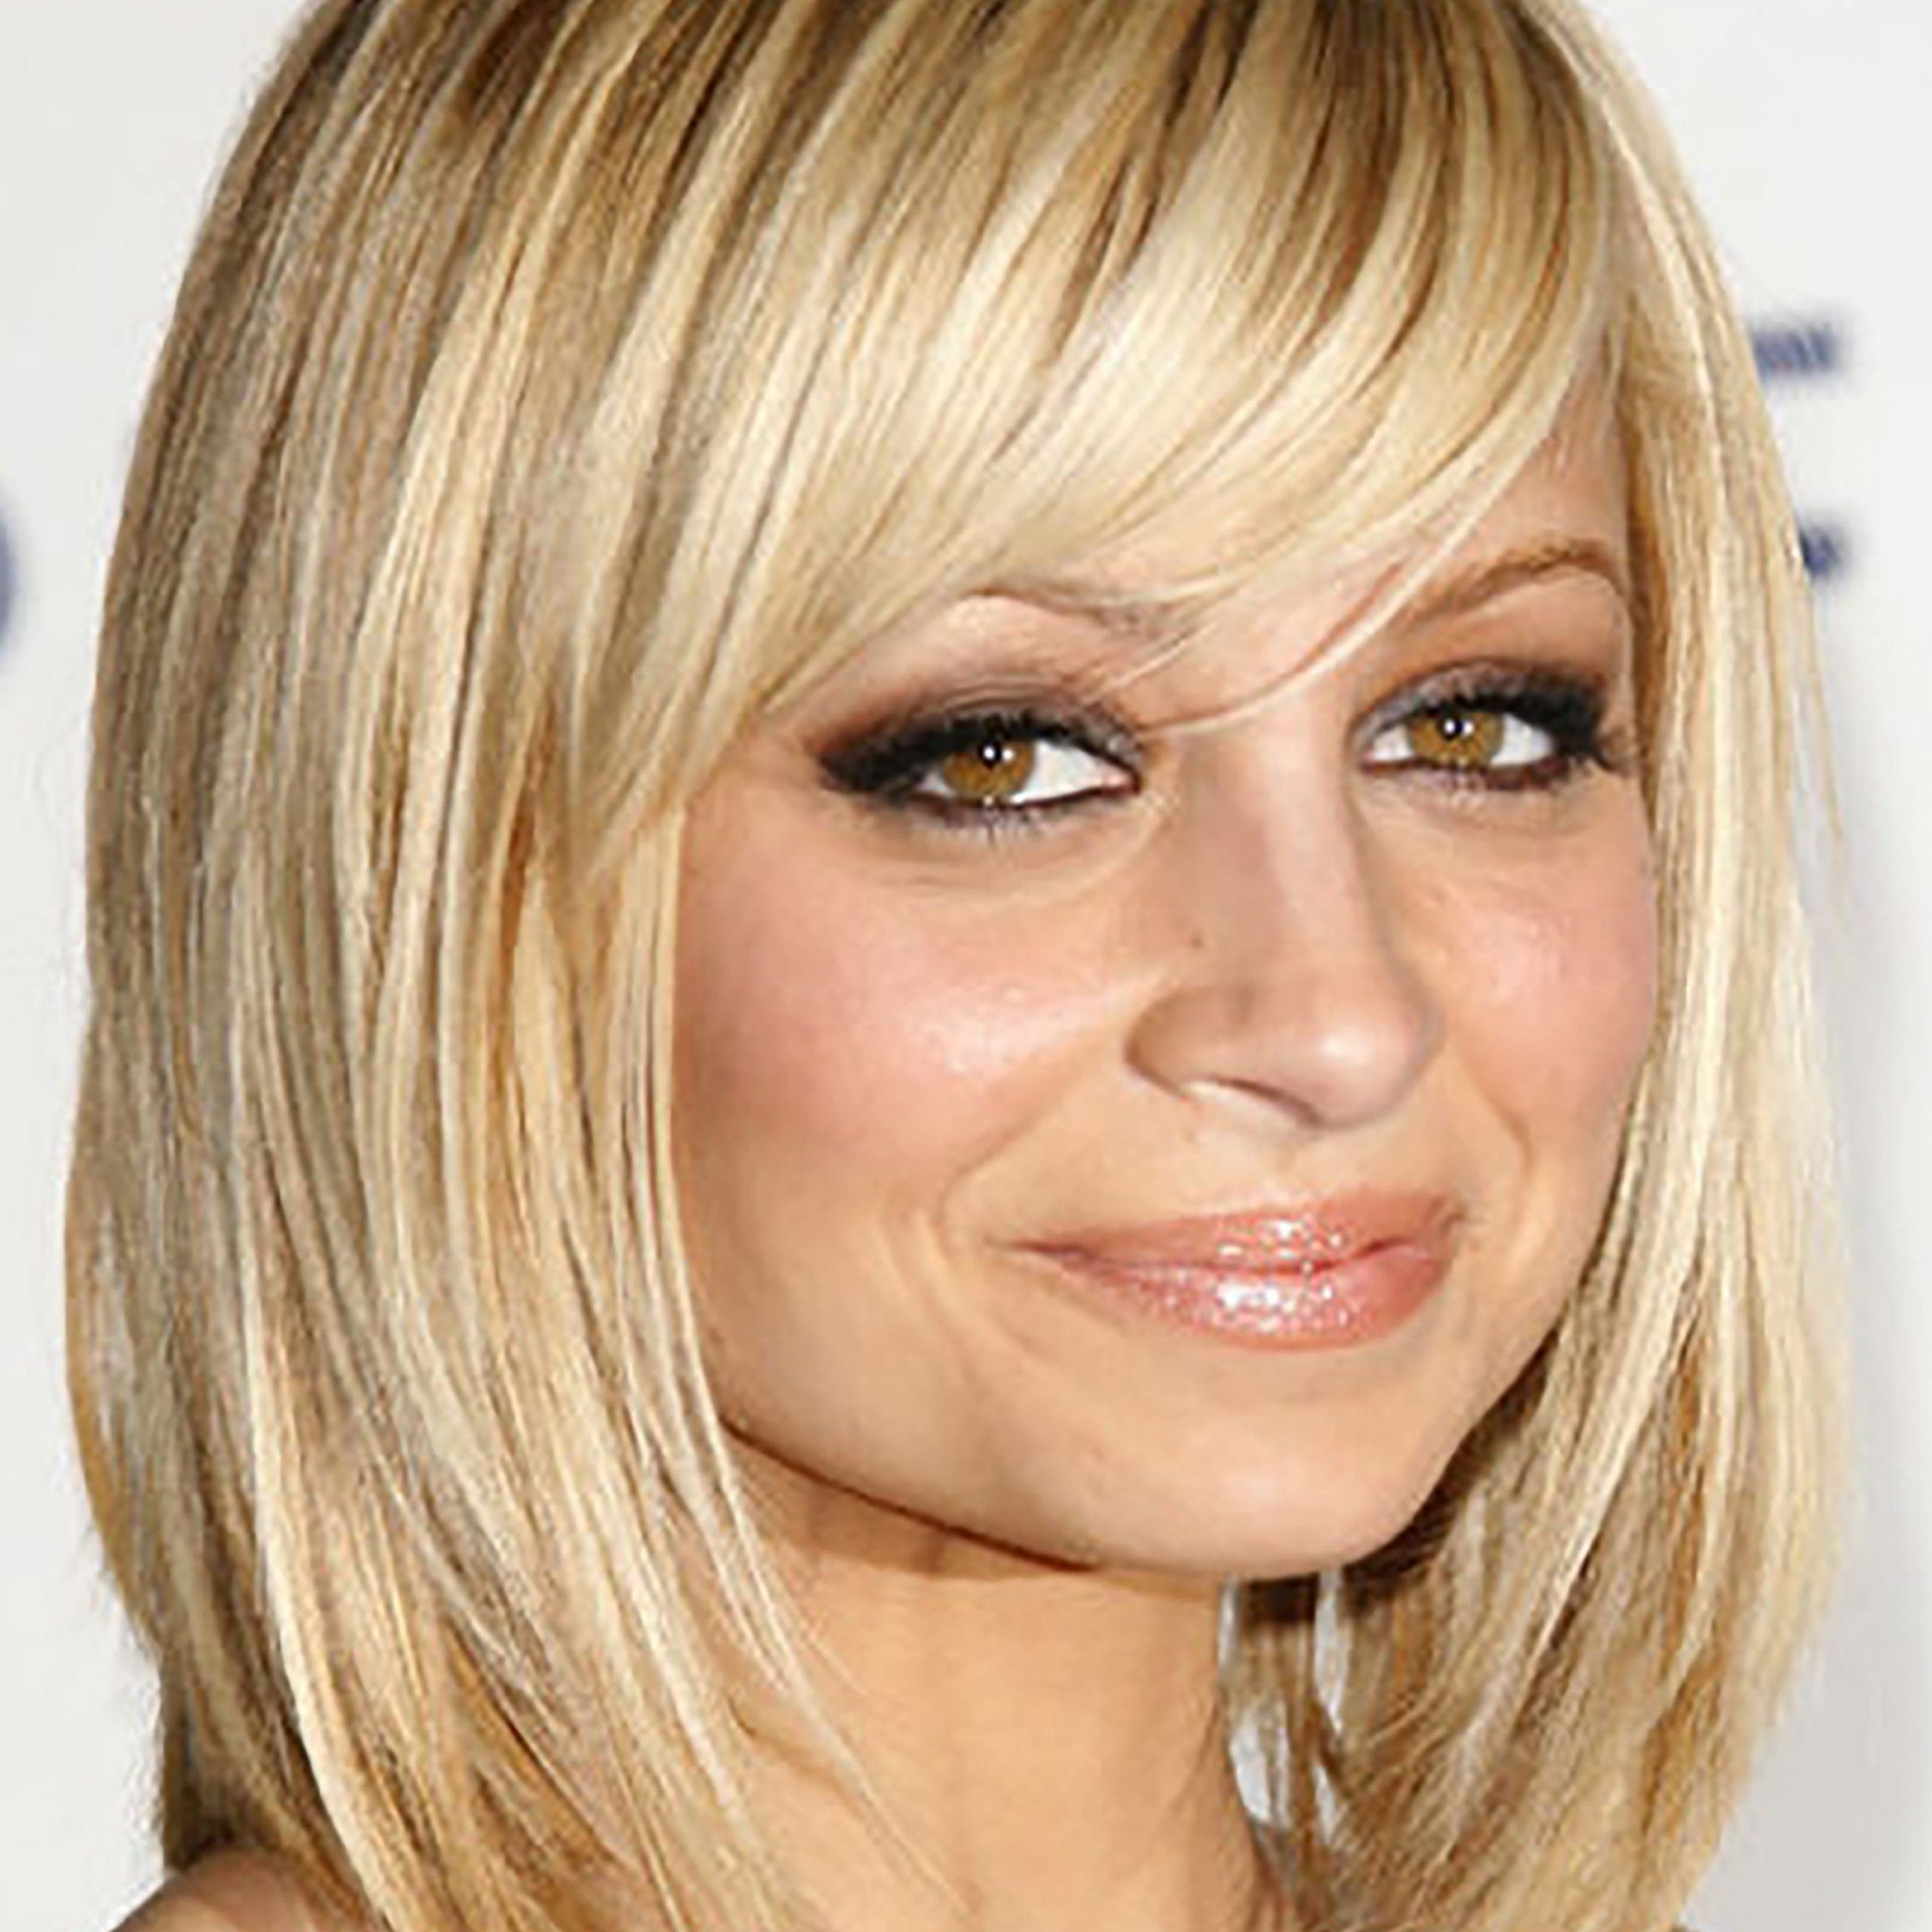 45 Cute Short Haircuts For Women 2020 – Short Celebrity In Most Up To Date Smooth Bob Hairstyles (View 12 of 20)